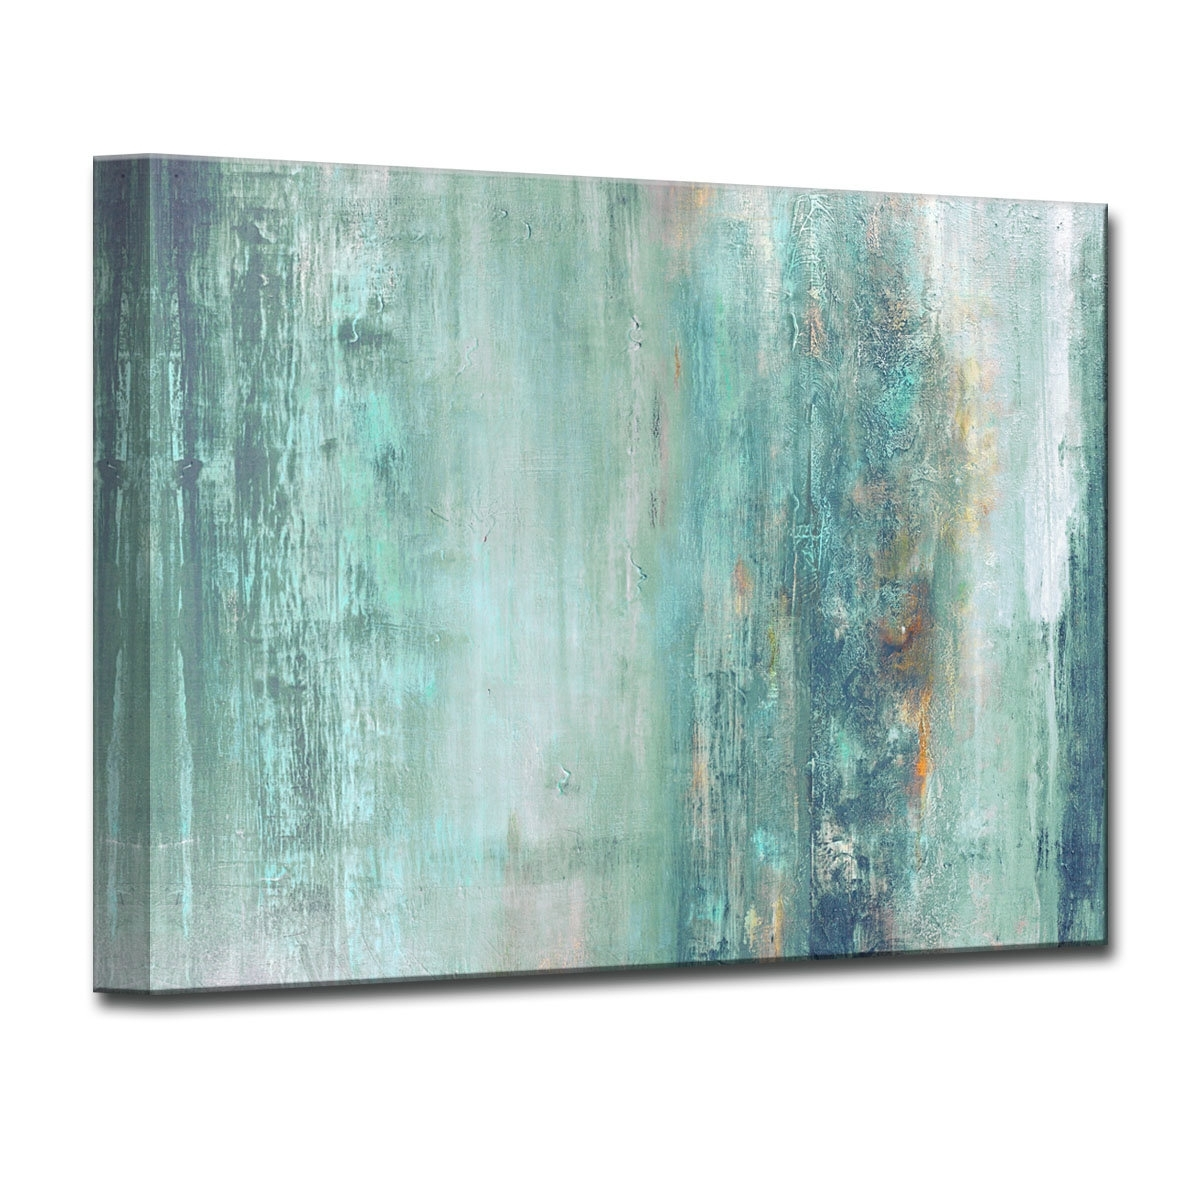 Beachcrest Home 'abstract Spa' Framed Graphic Art Print On Canvas Regarding Most Recent Blue And Brown Abstract Wall Art (Gallery 15 of 20)